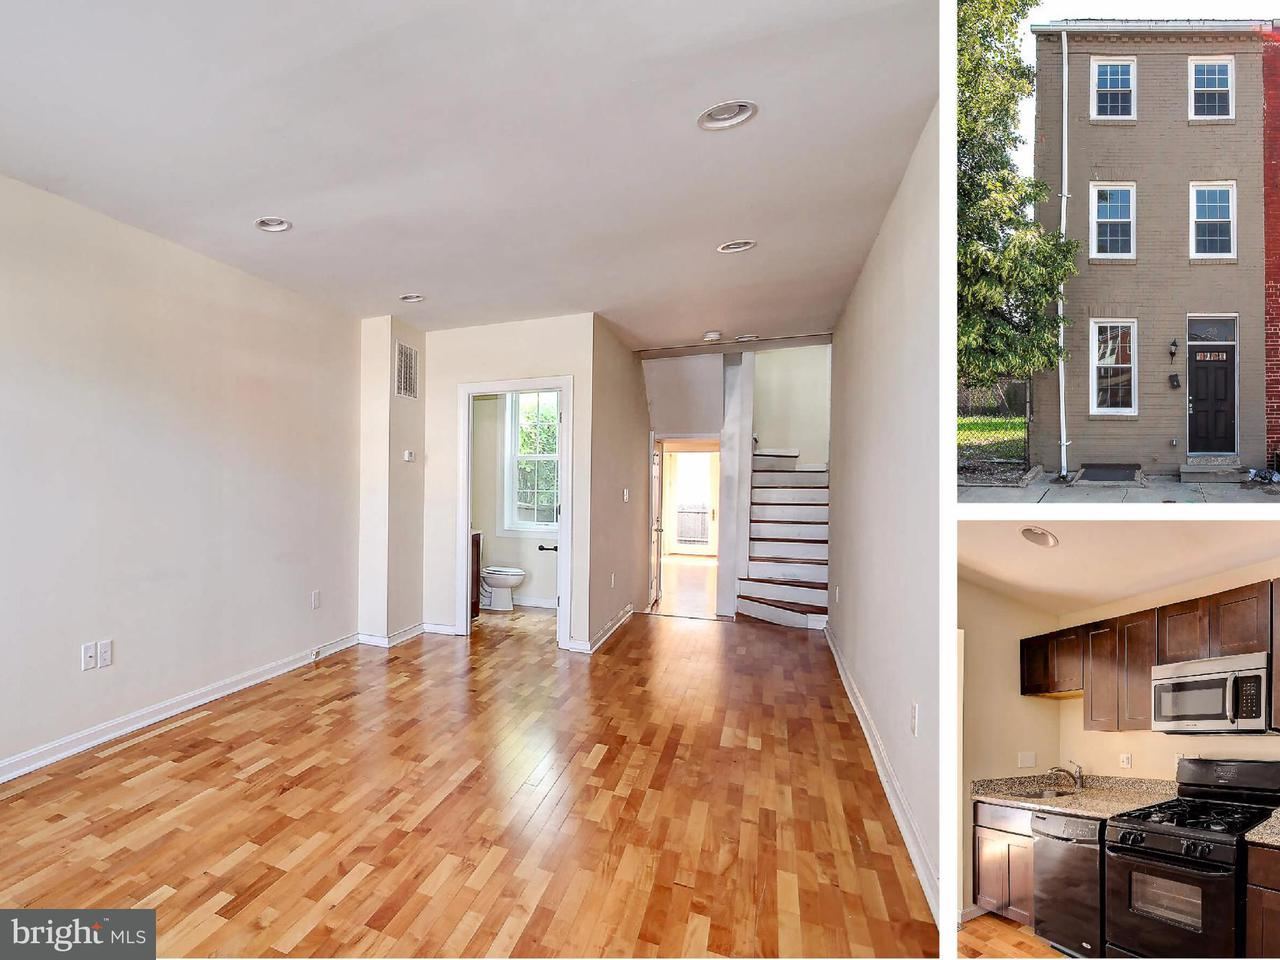 Single Family for Sale at 133 Central Ave S Baltimore, Maryland 21202 United States